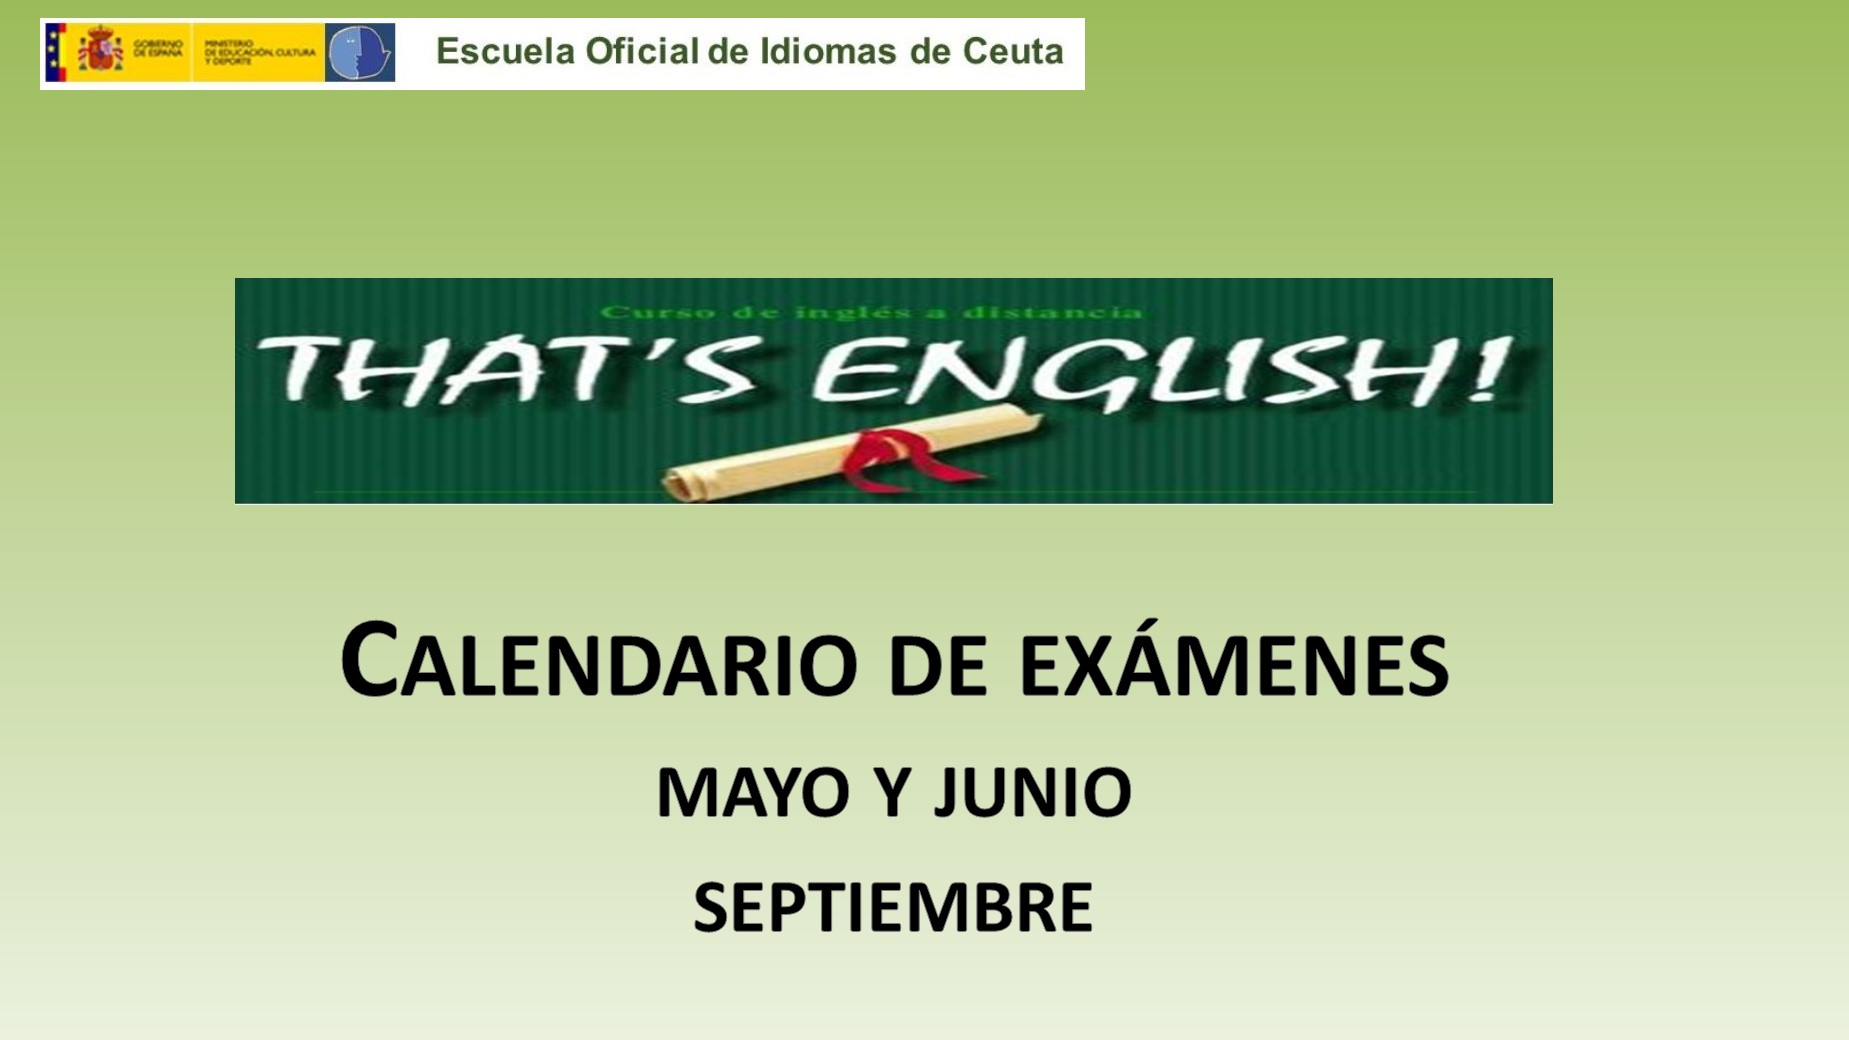 CALENDARIO EXÁMENES THAT´S ENGLISH!